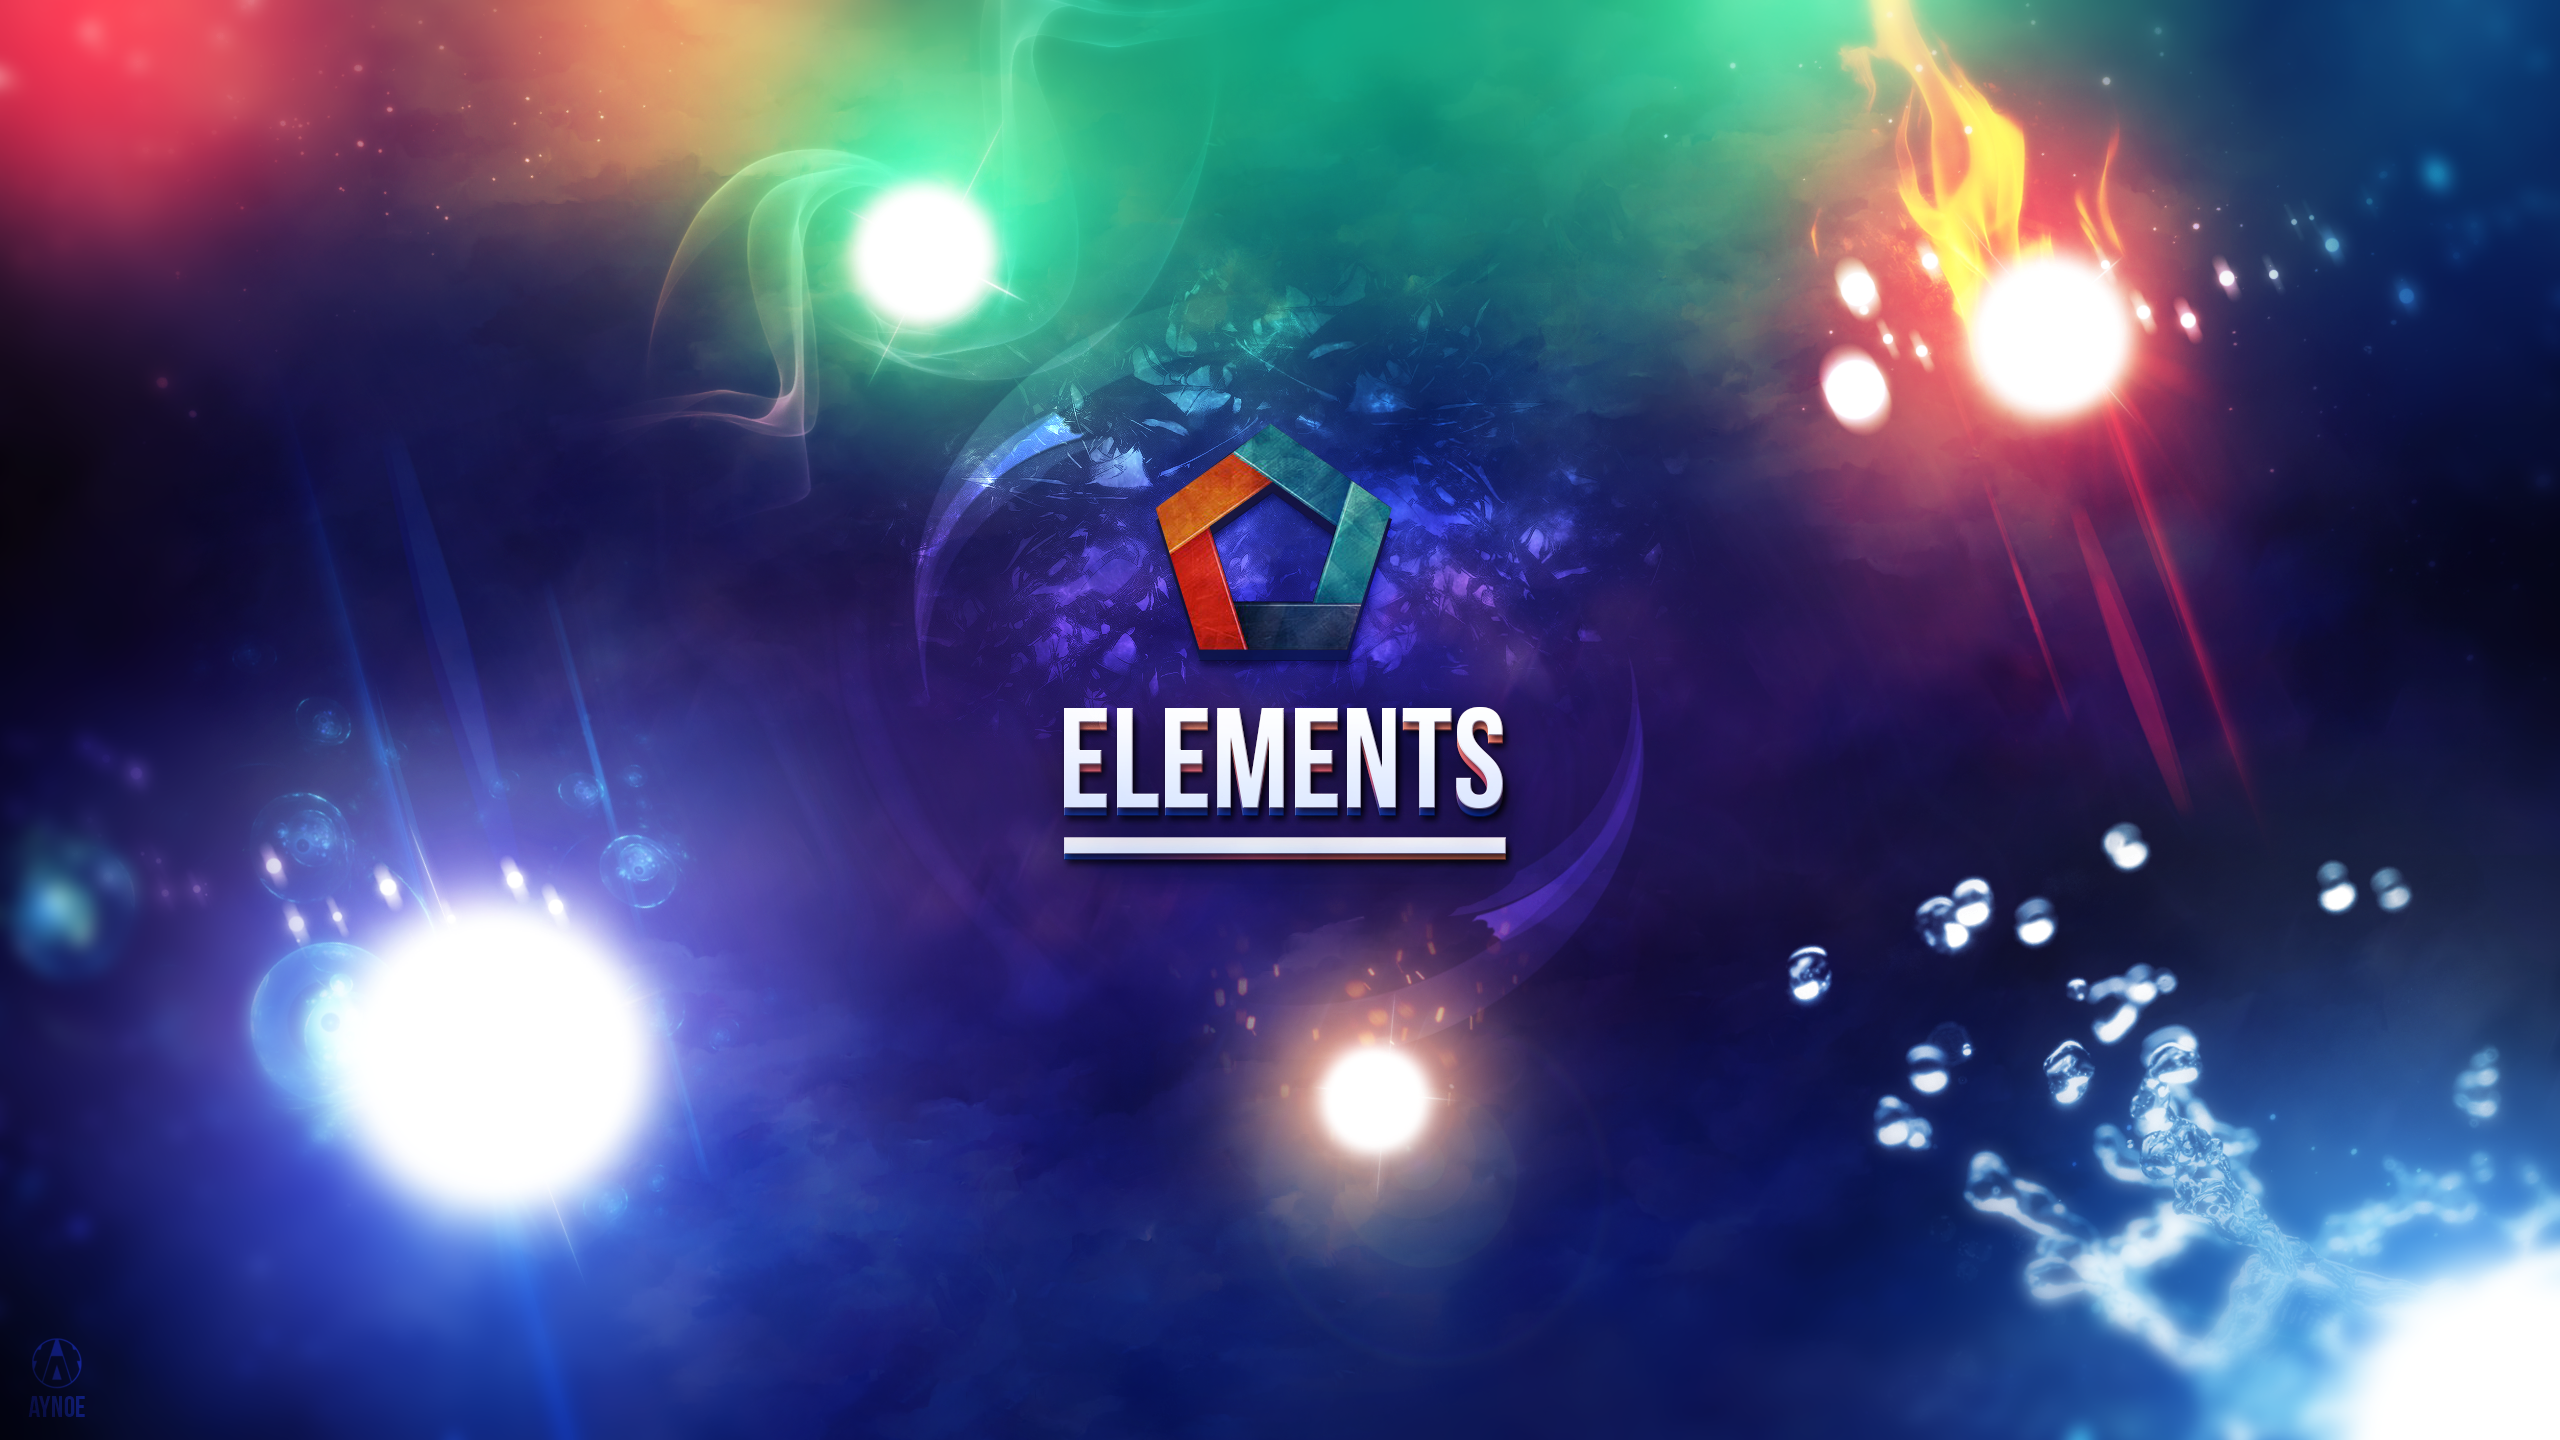 Elements wallpaper